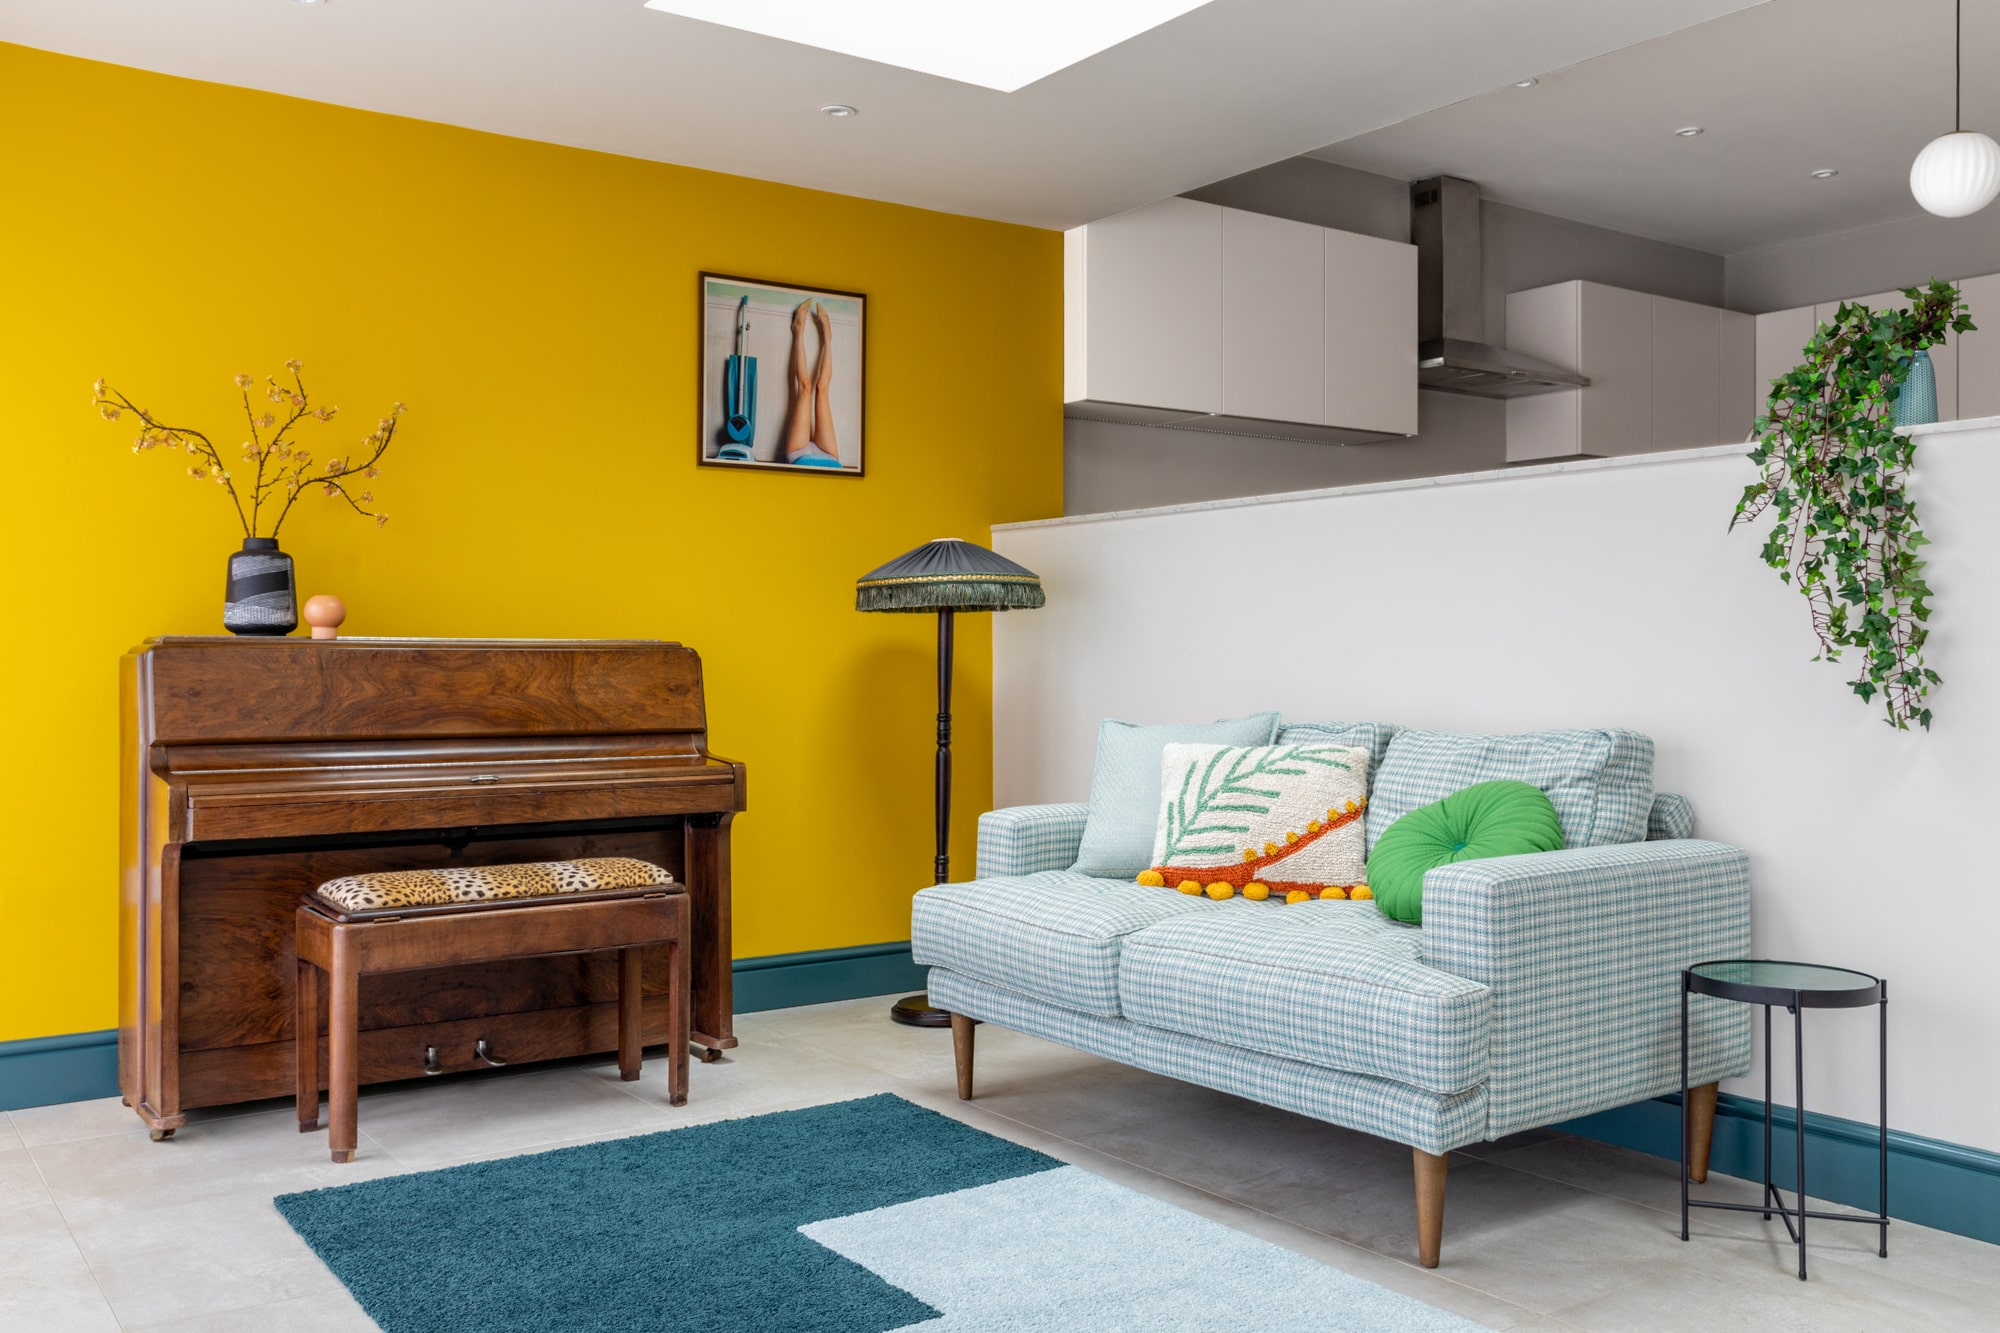 Interior design photo: a view from a dining area to a sitting living room area with a wooden table, a yellow wall, a brown piano and a sofa upholstered with green gingham pattern. There is a standing lamp on the left side of the sofa